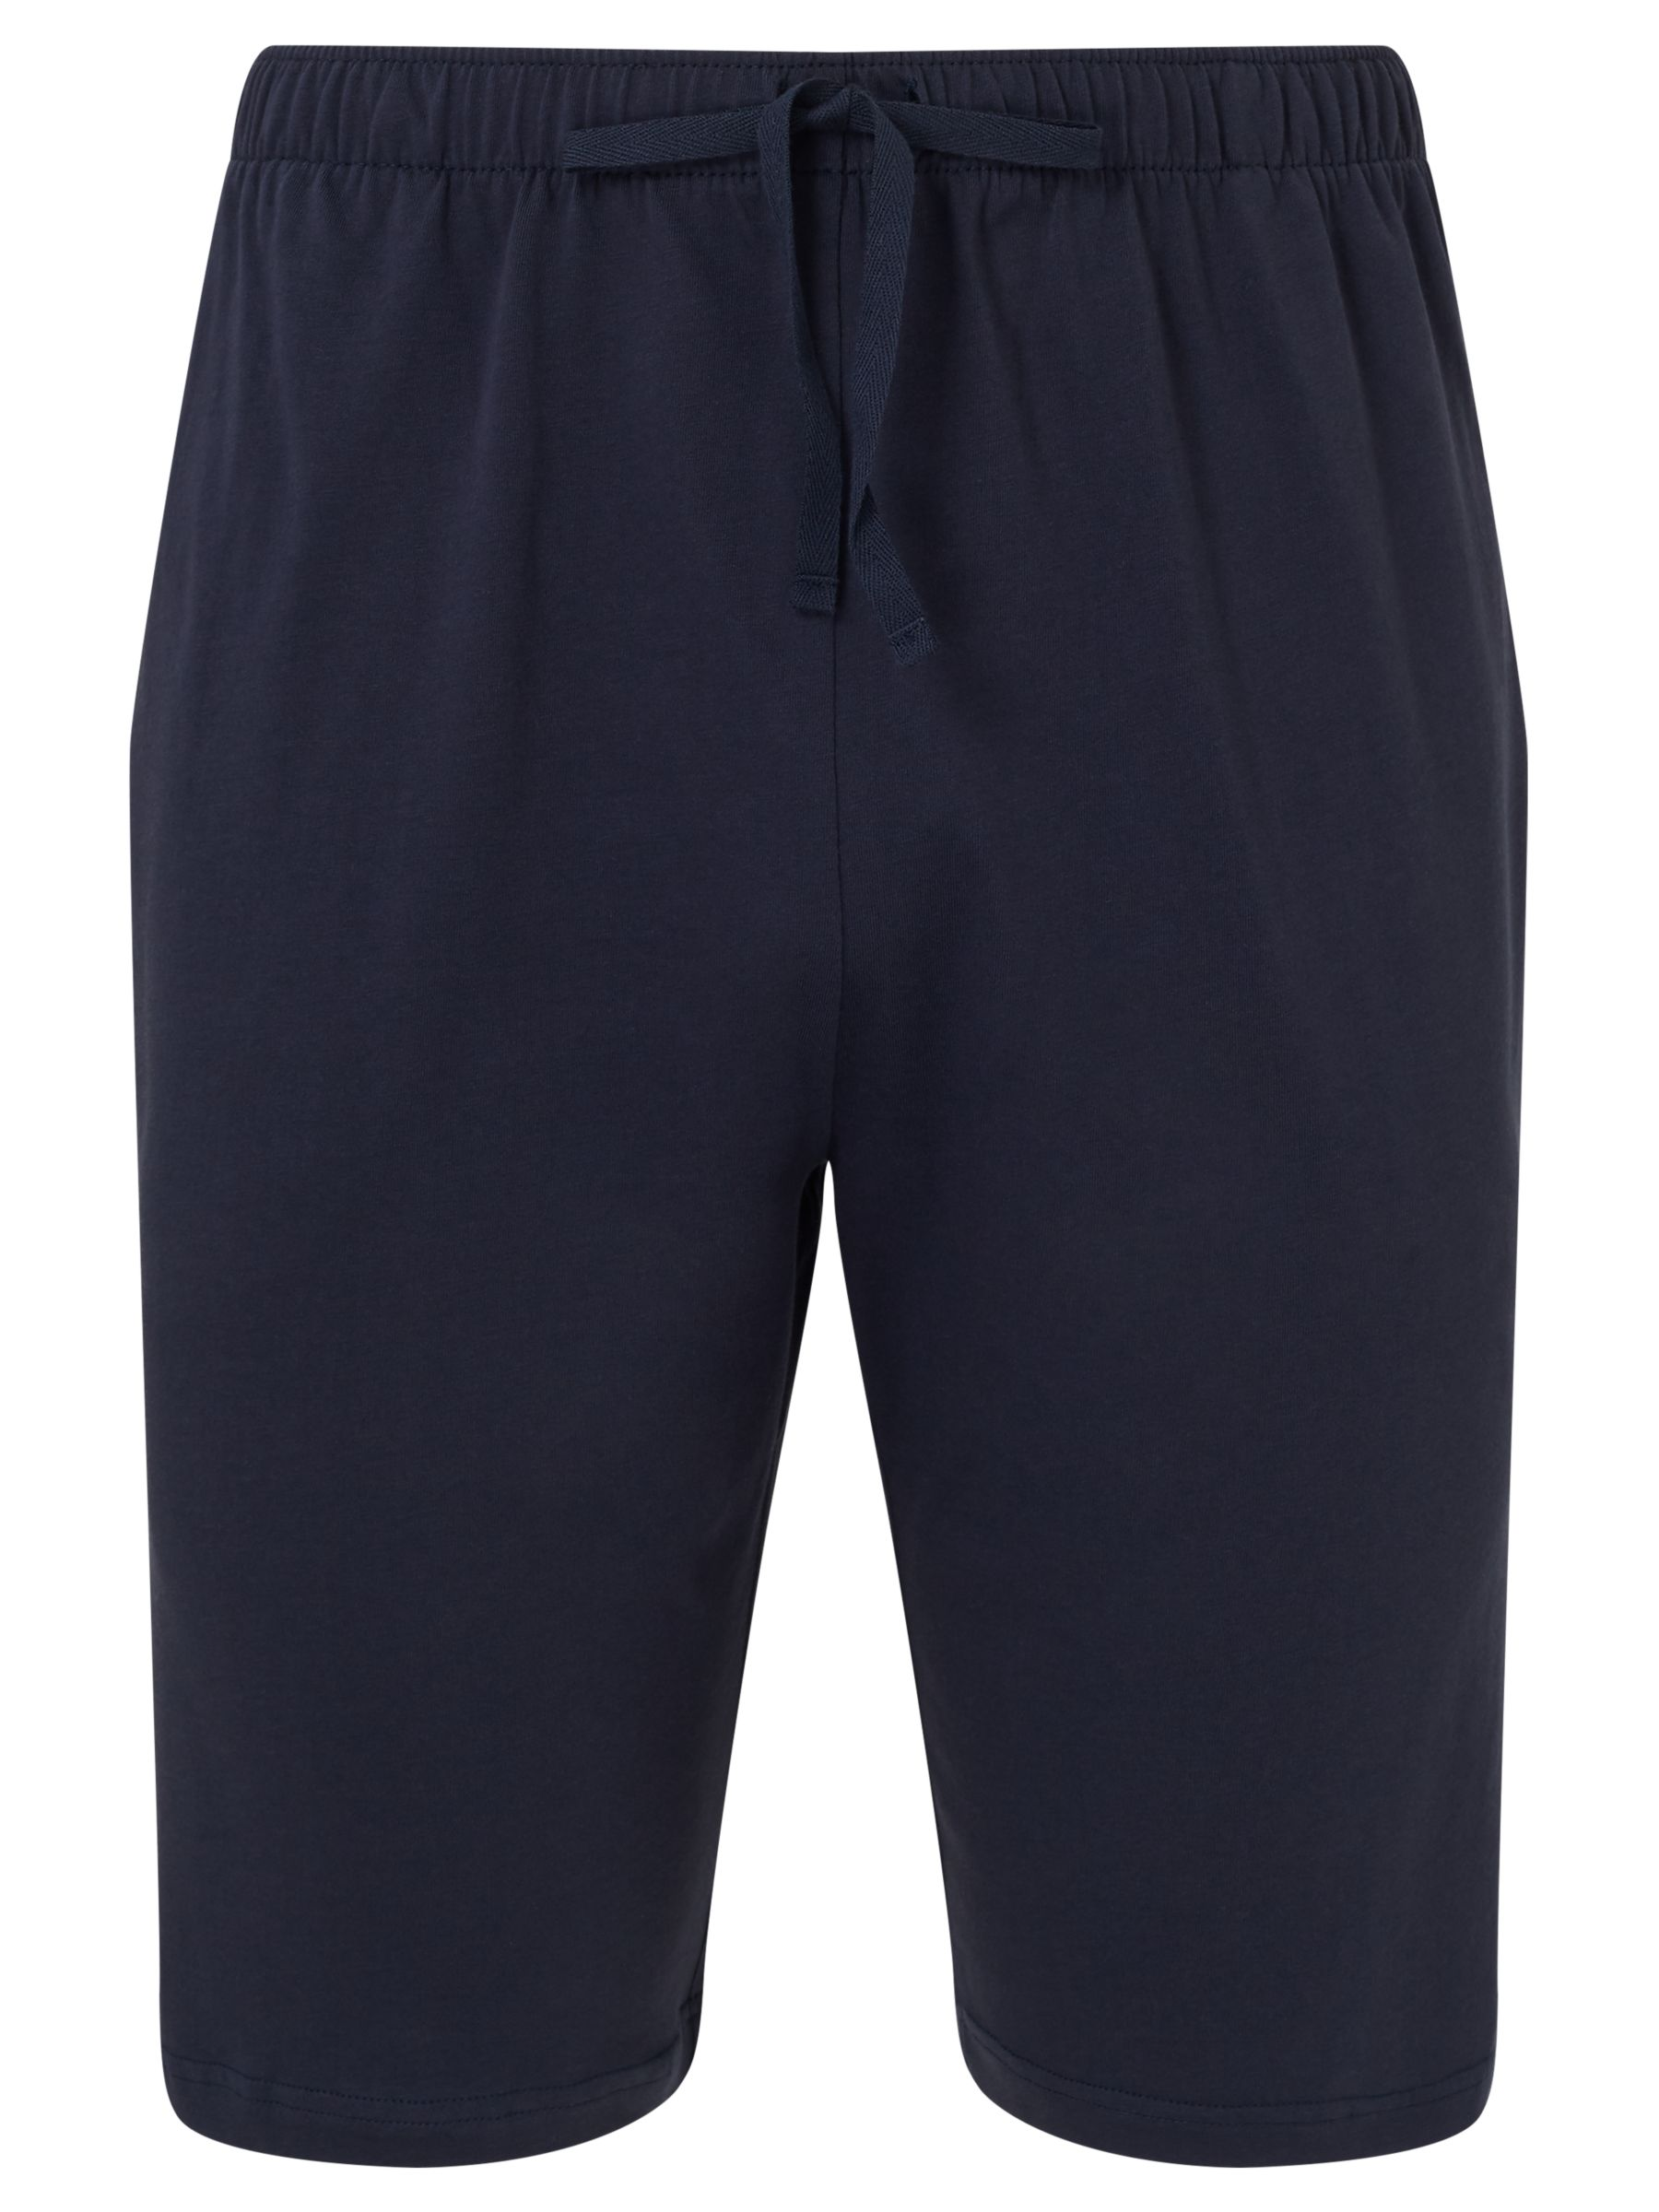 Sunspel Sunspel Pima Cotton Lounge Shorts, Navy